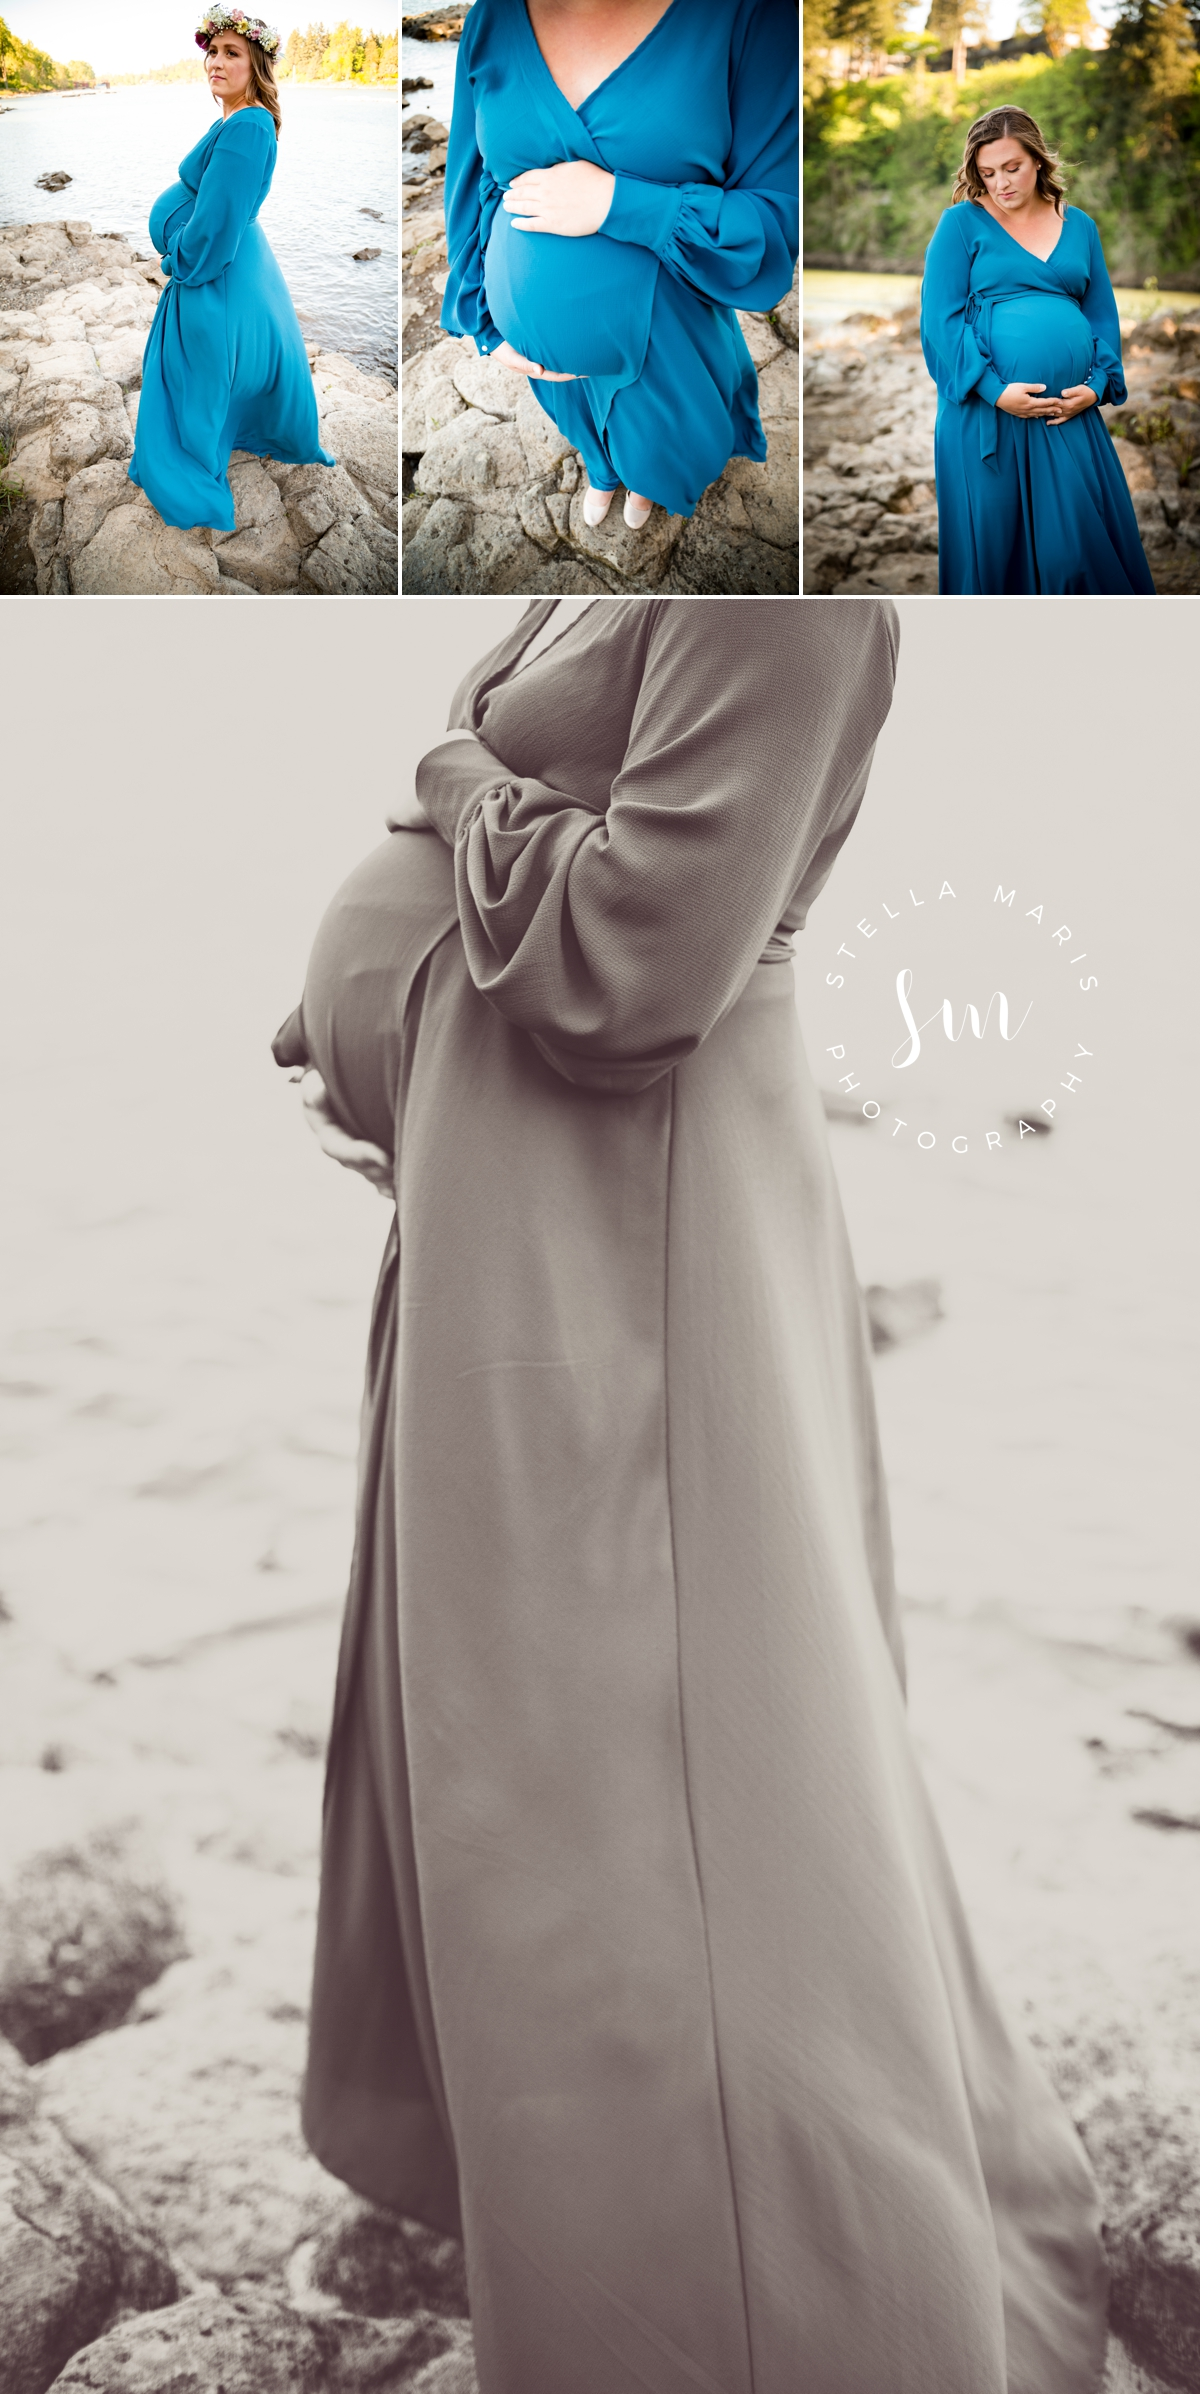 Styled Maternity Session 2.jpg